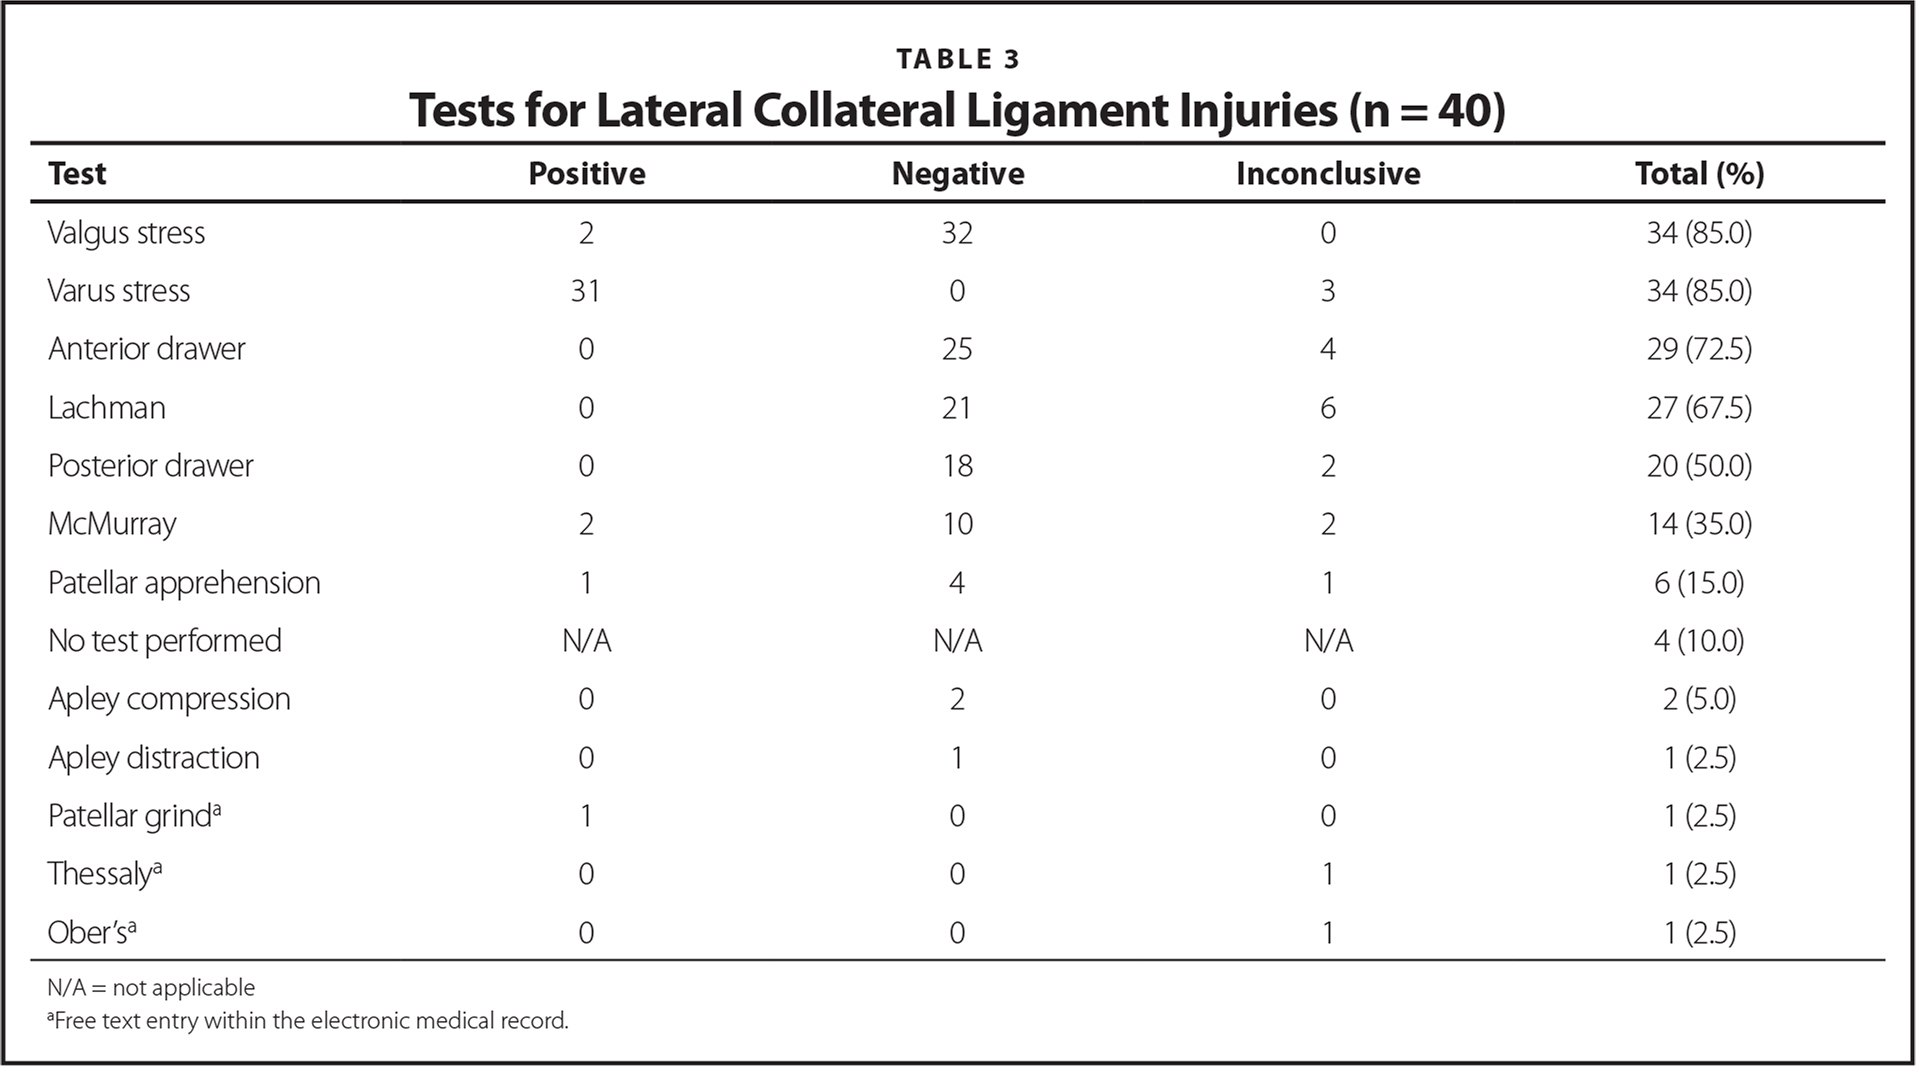 Tests for Lateral Collateral Ligament Injuries (n = 40)